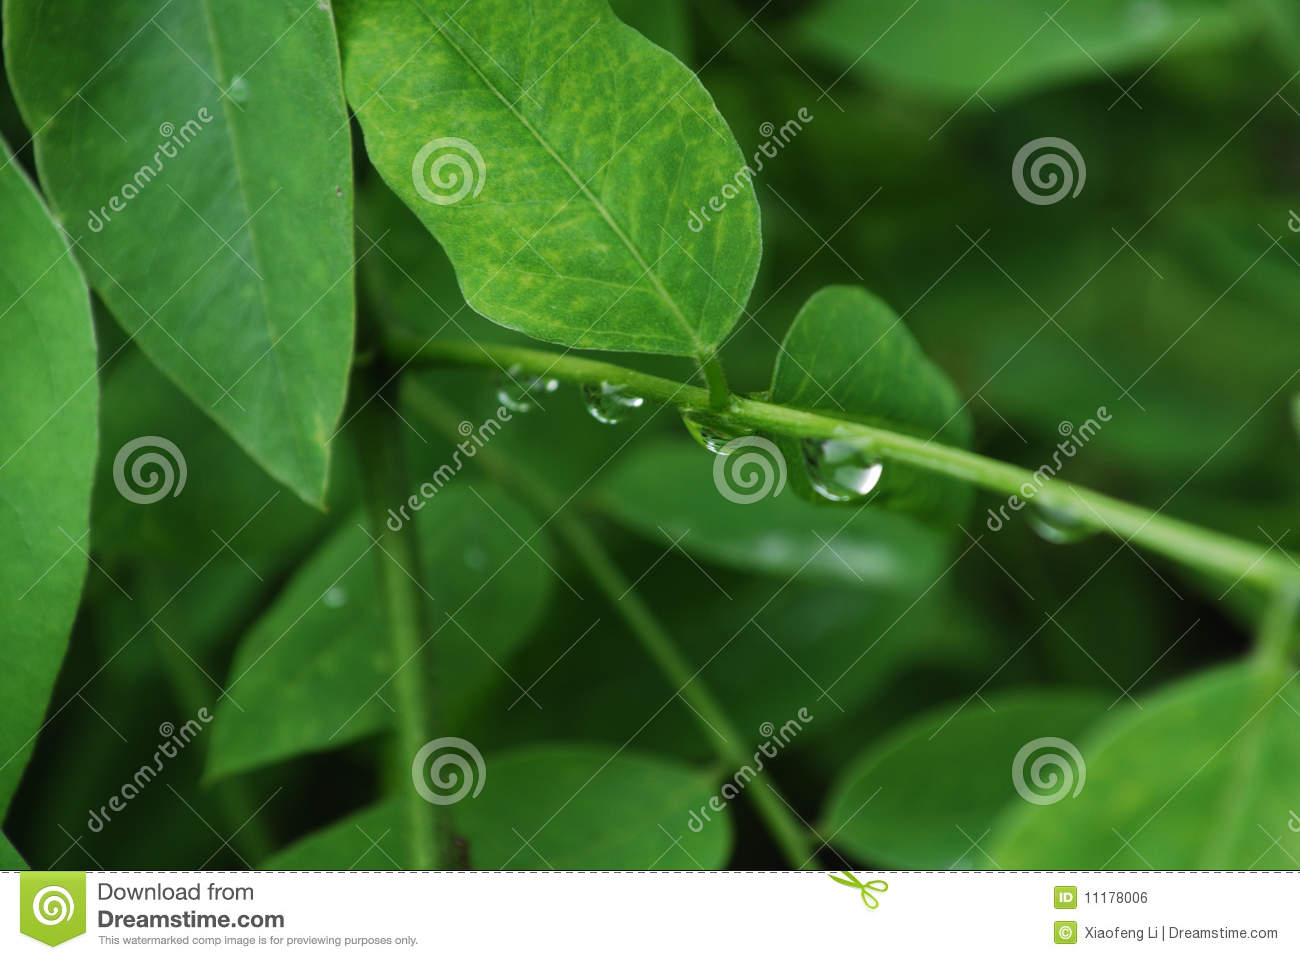 Green Leaves and Raindrops